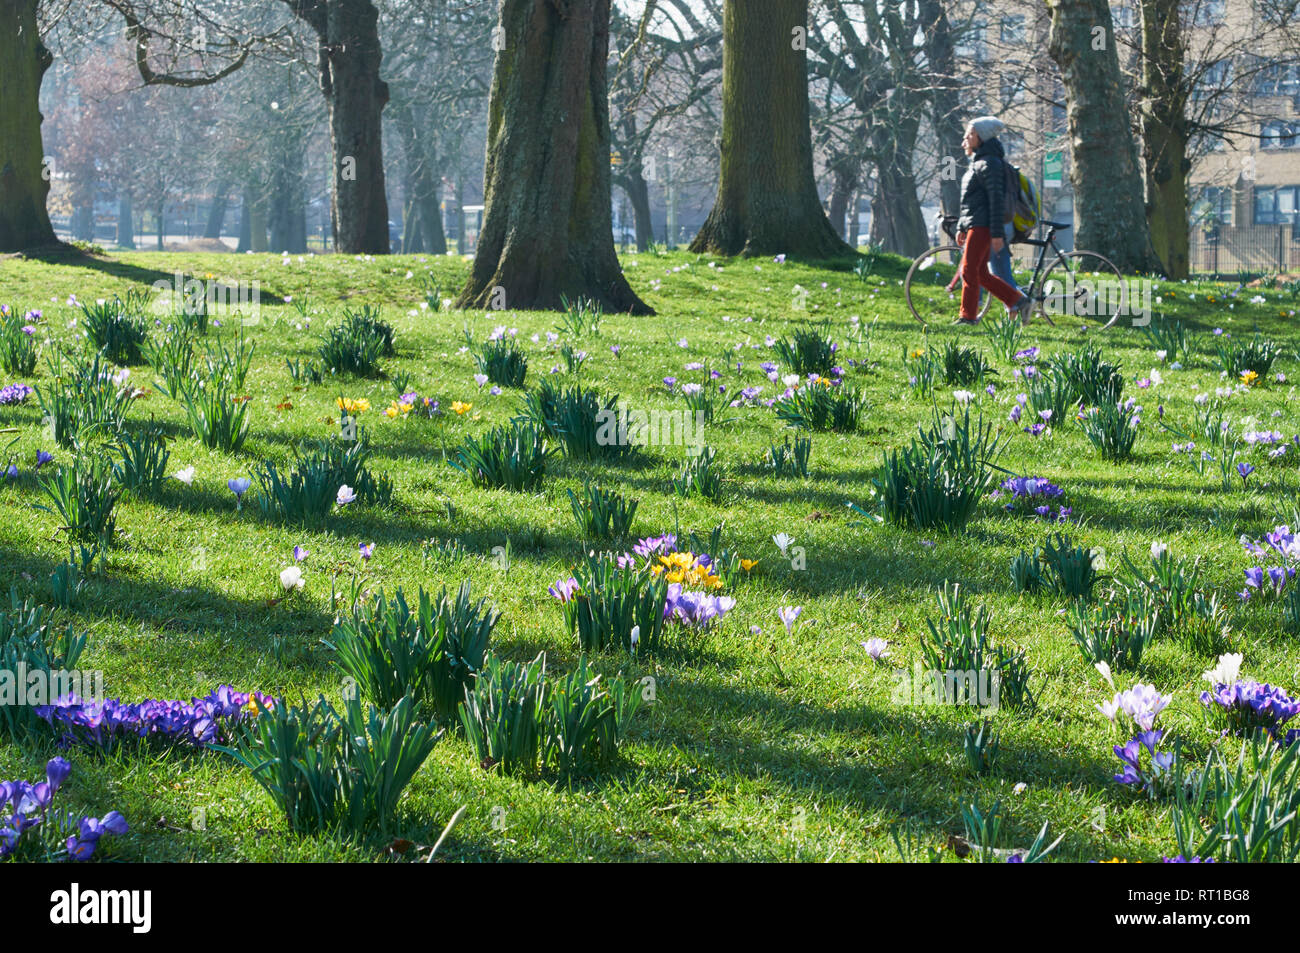 Clissold Park, Stoke Newington, North London, UK. 27th Feb 2019. On the morning of 27th February 2019, with snowdrops springing up in the grass and passers by, during the very warm weather of late February 2019 Credit: Richard Barnes/Alamy Live News - Stock Image